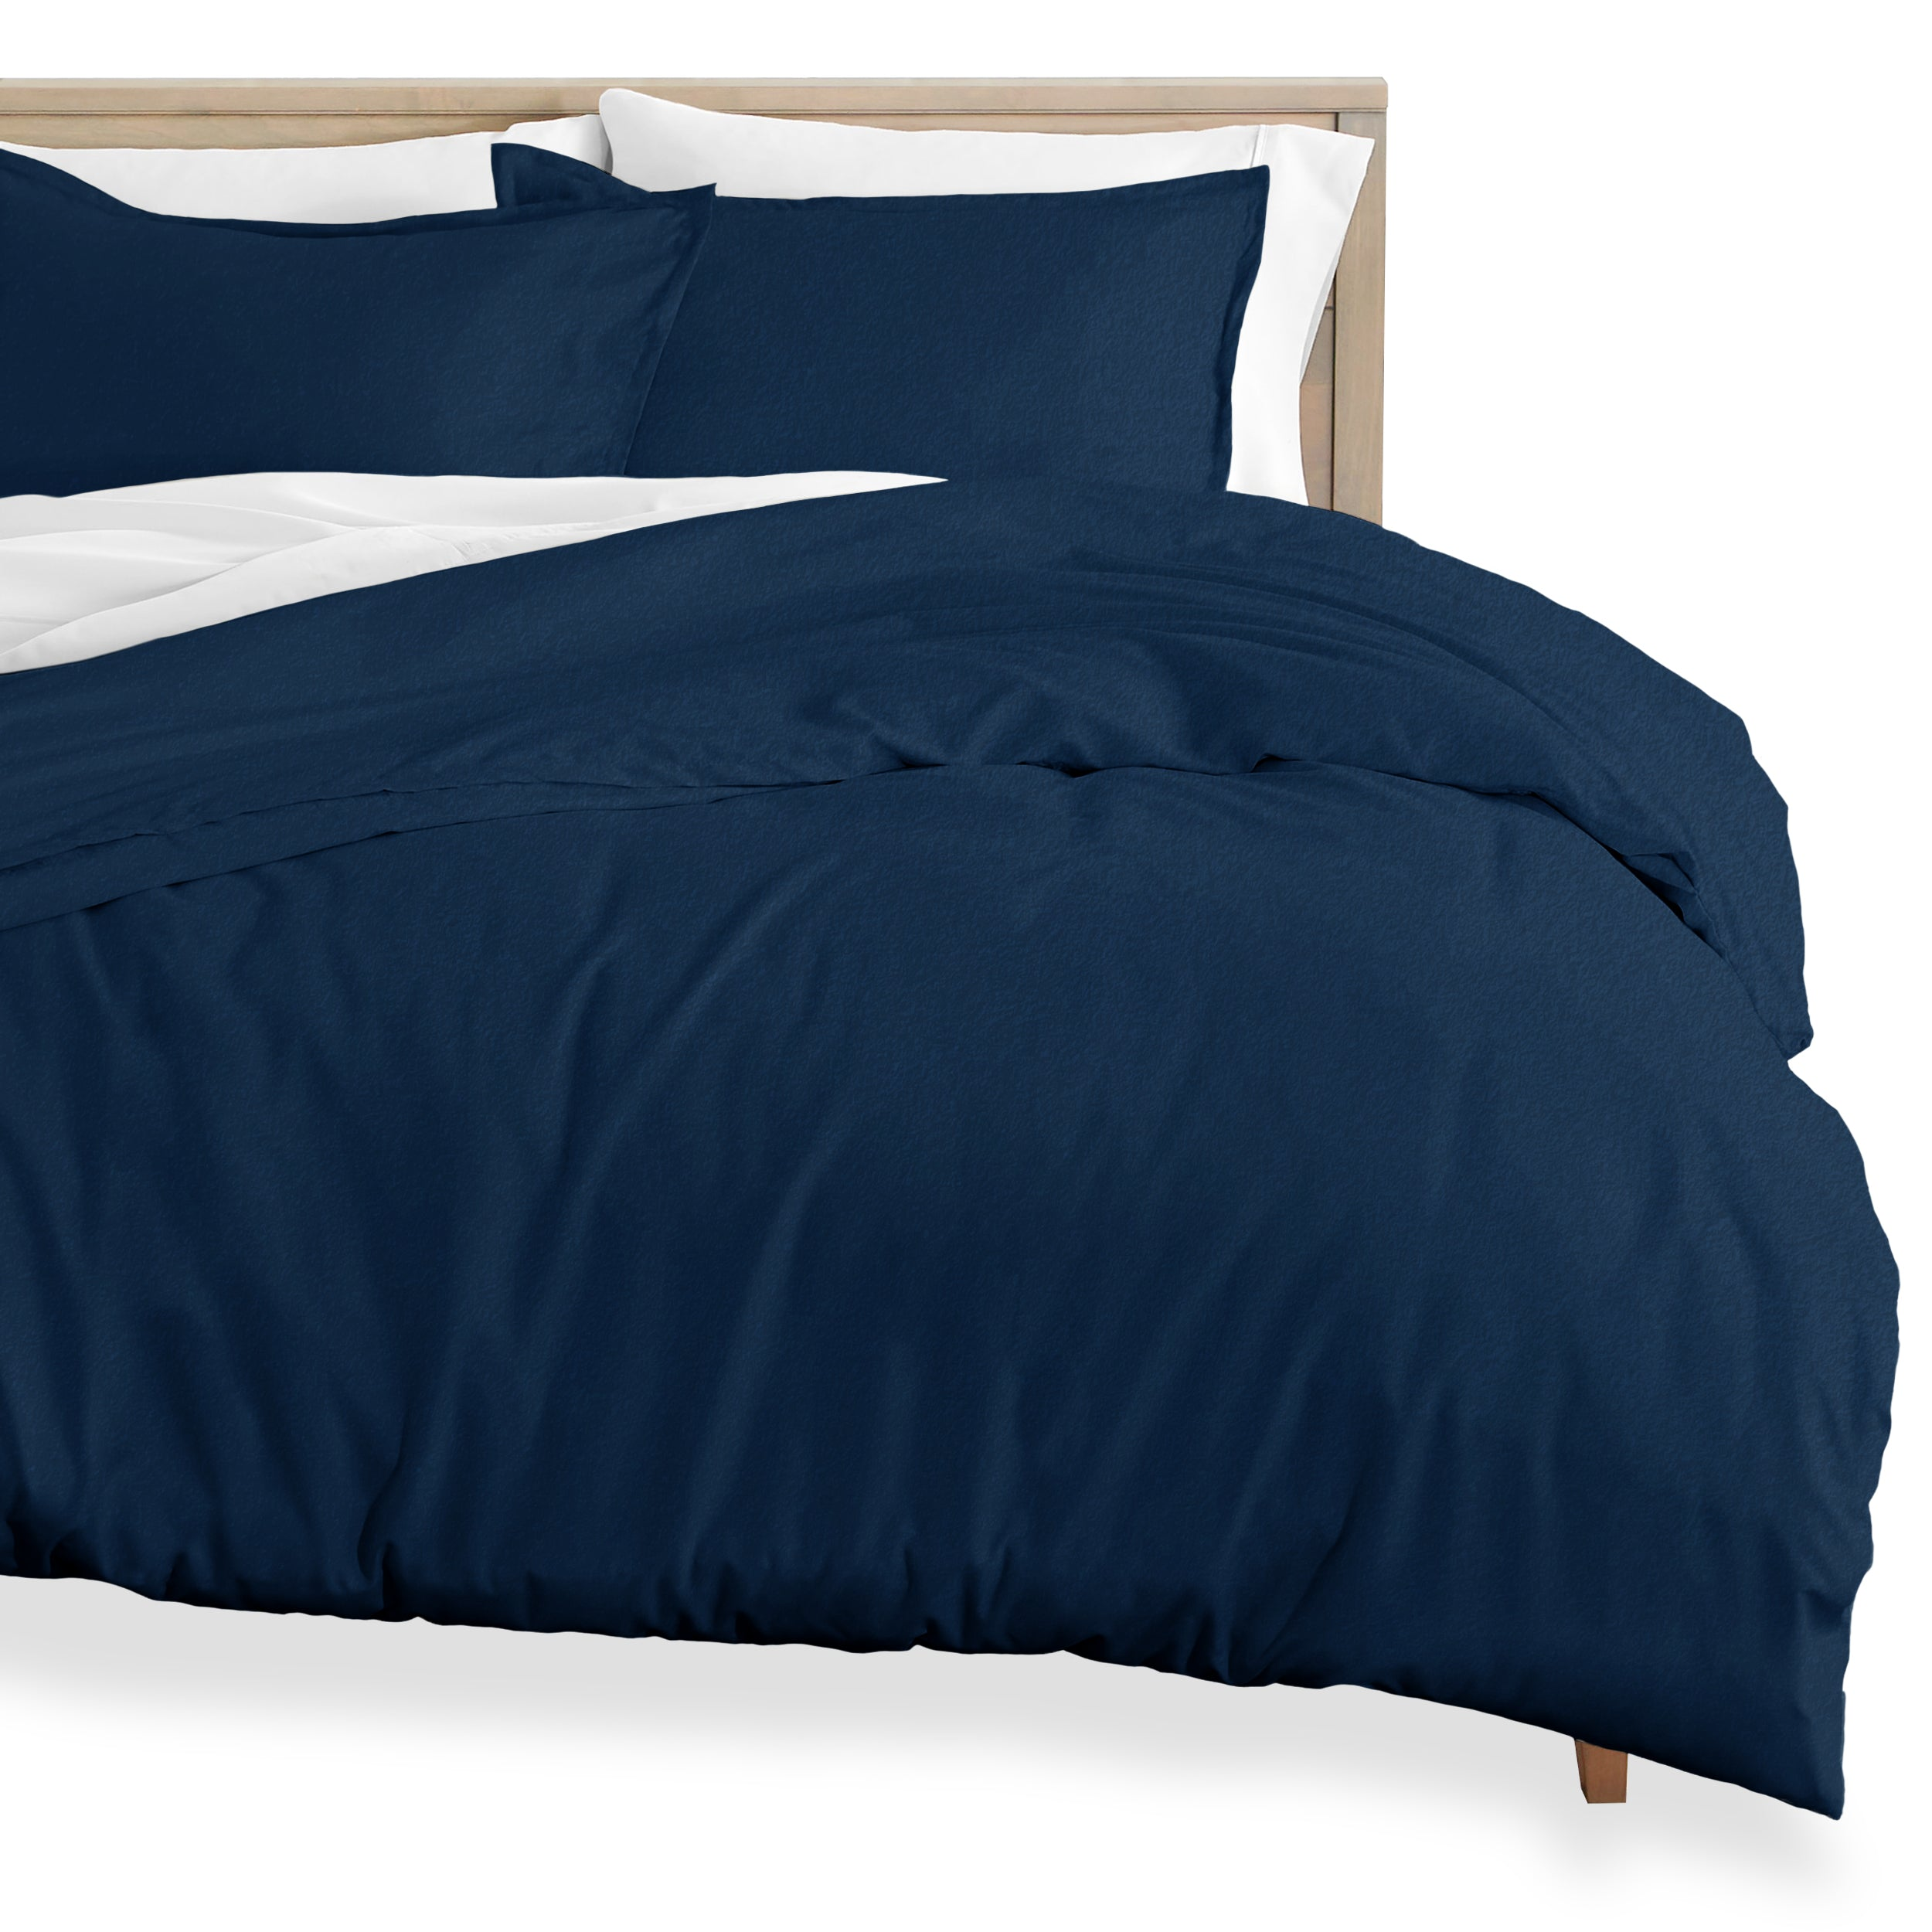 Flannel Cotton Duvet Set